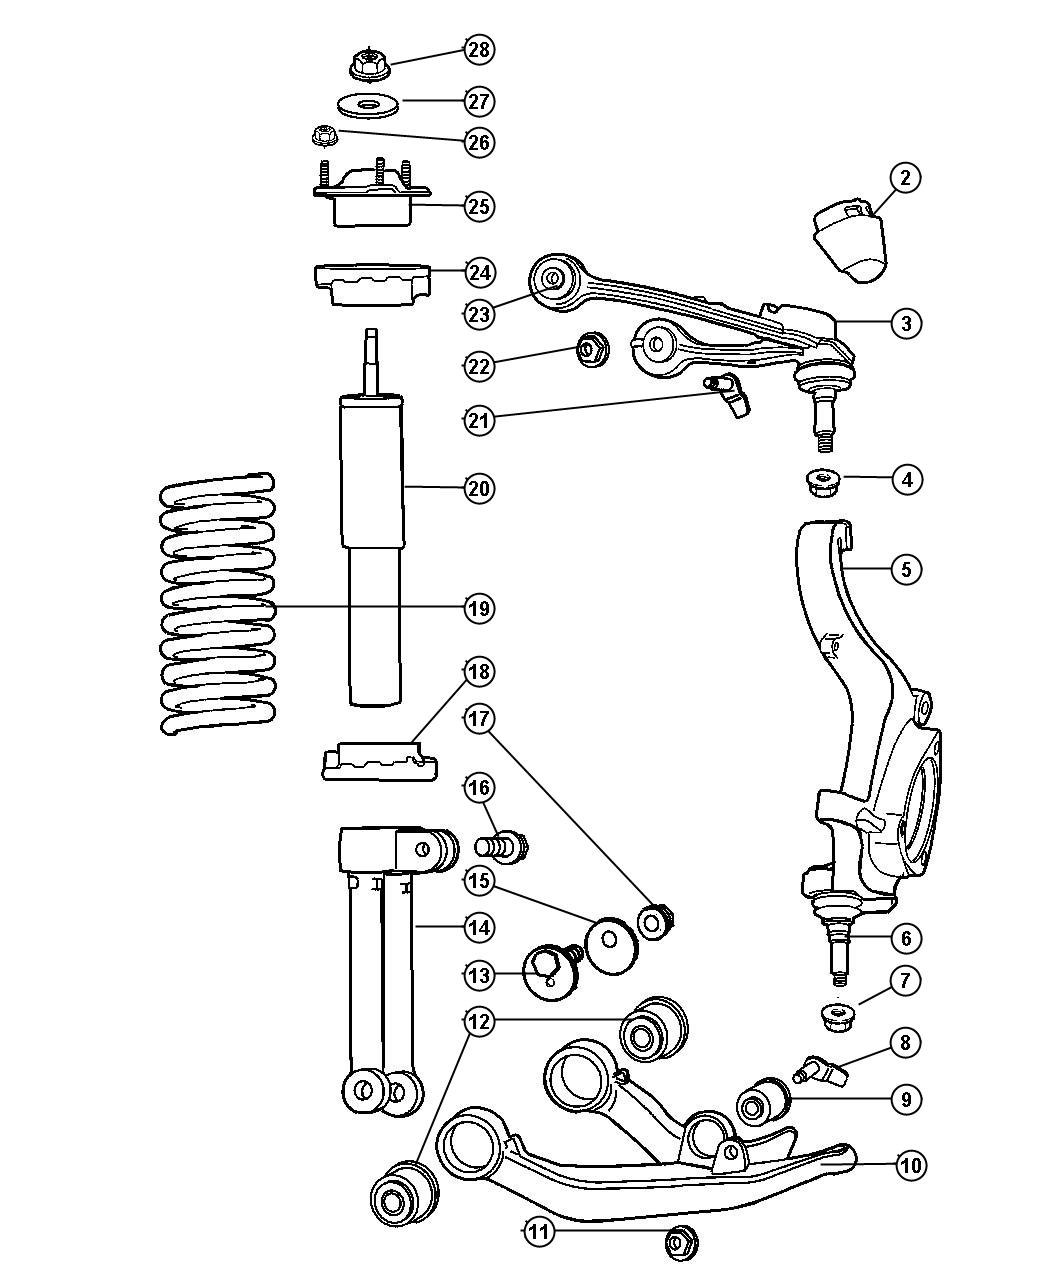 2006 Jeep Liberty Front Suspension Diagram Wiring Diagrams Engine Part Rear Communication System Parts Grand Cherokee